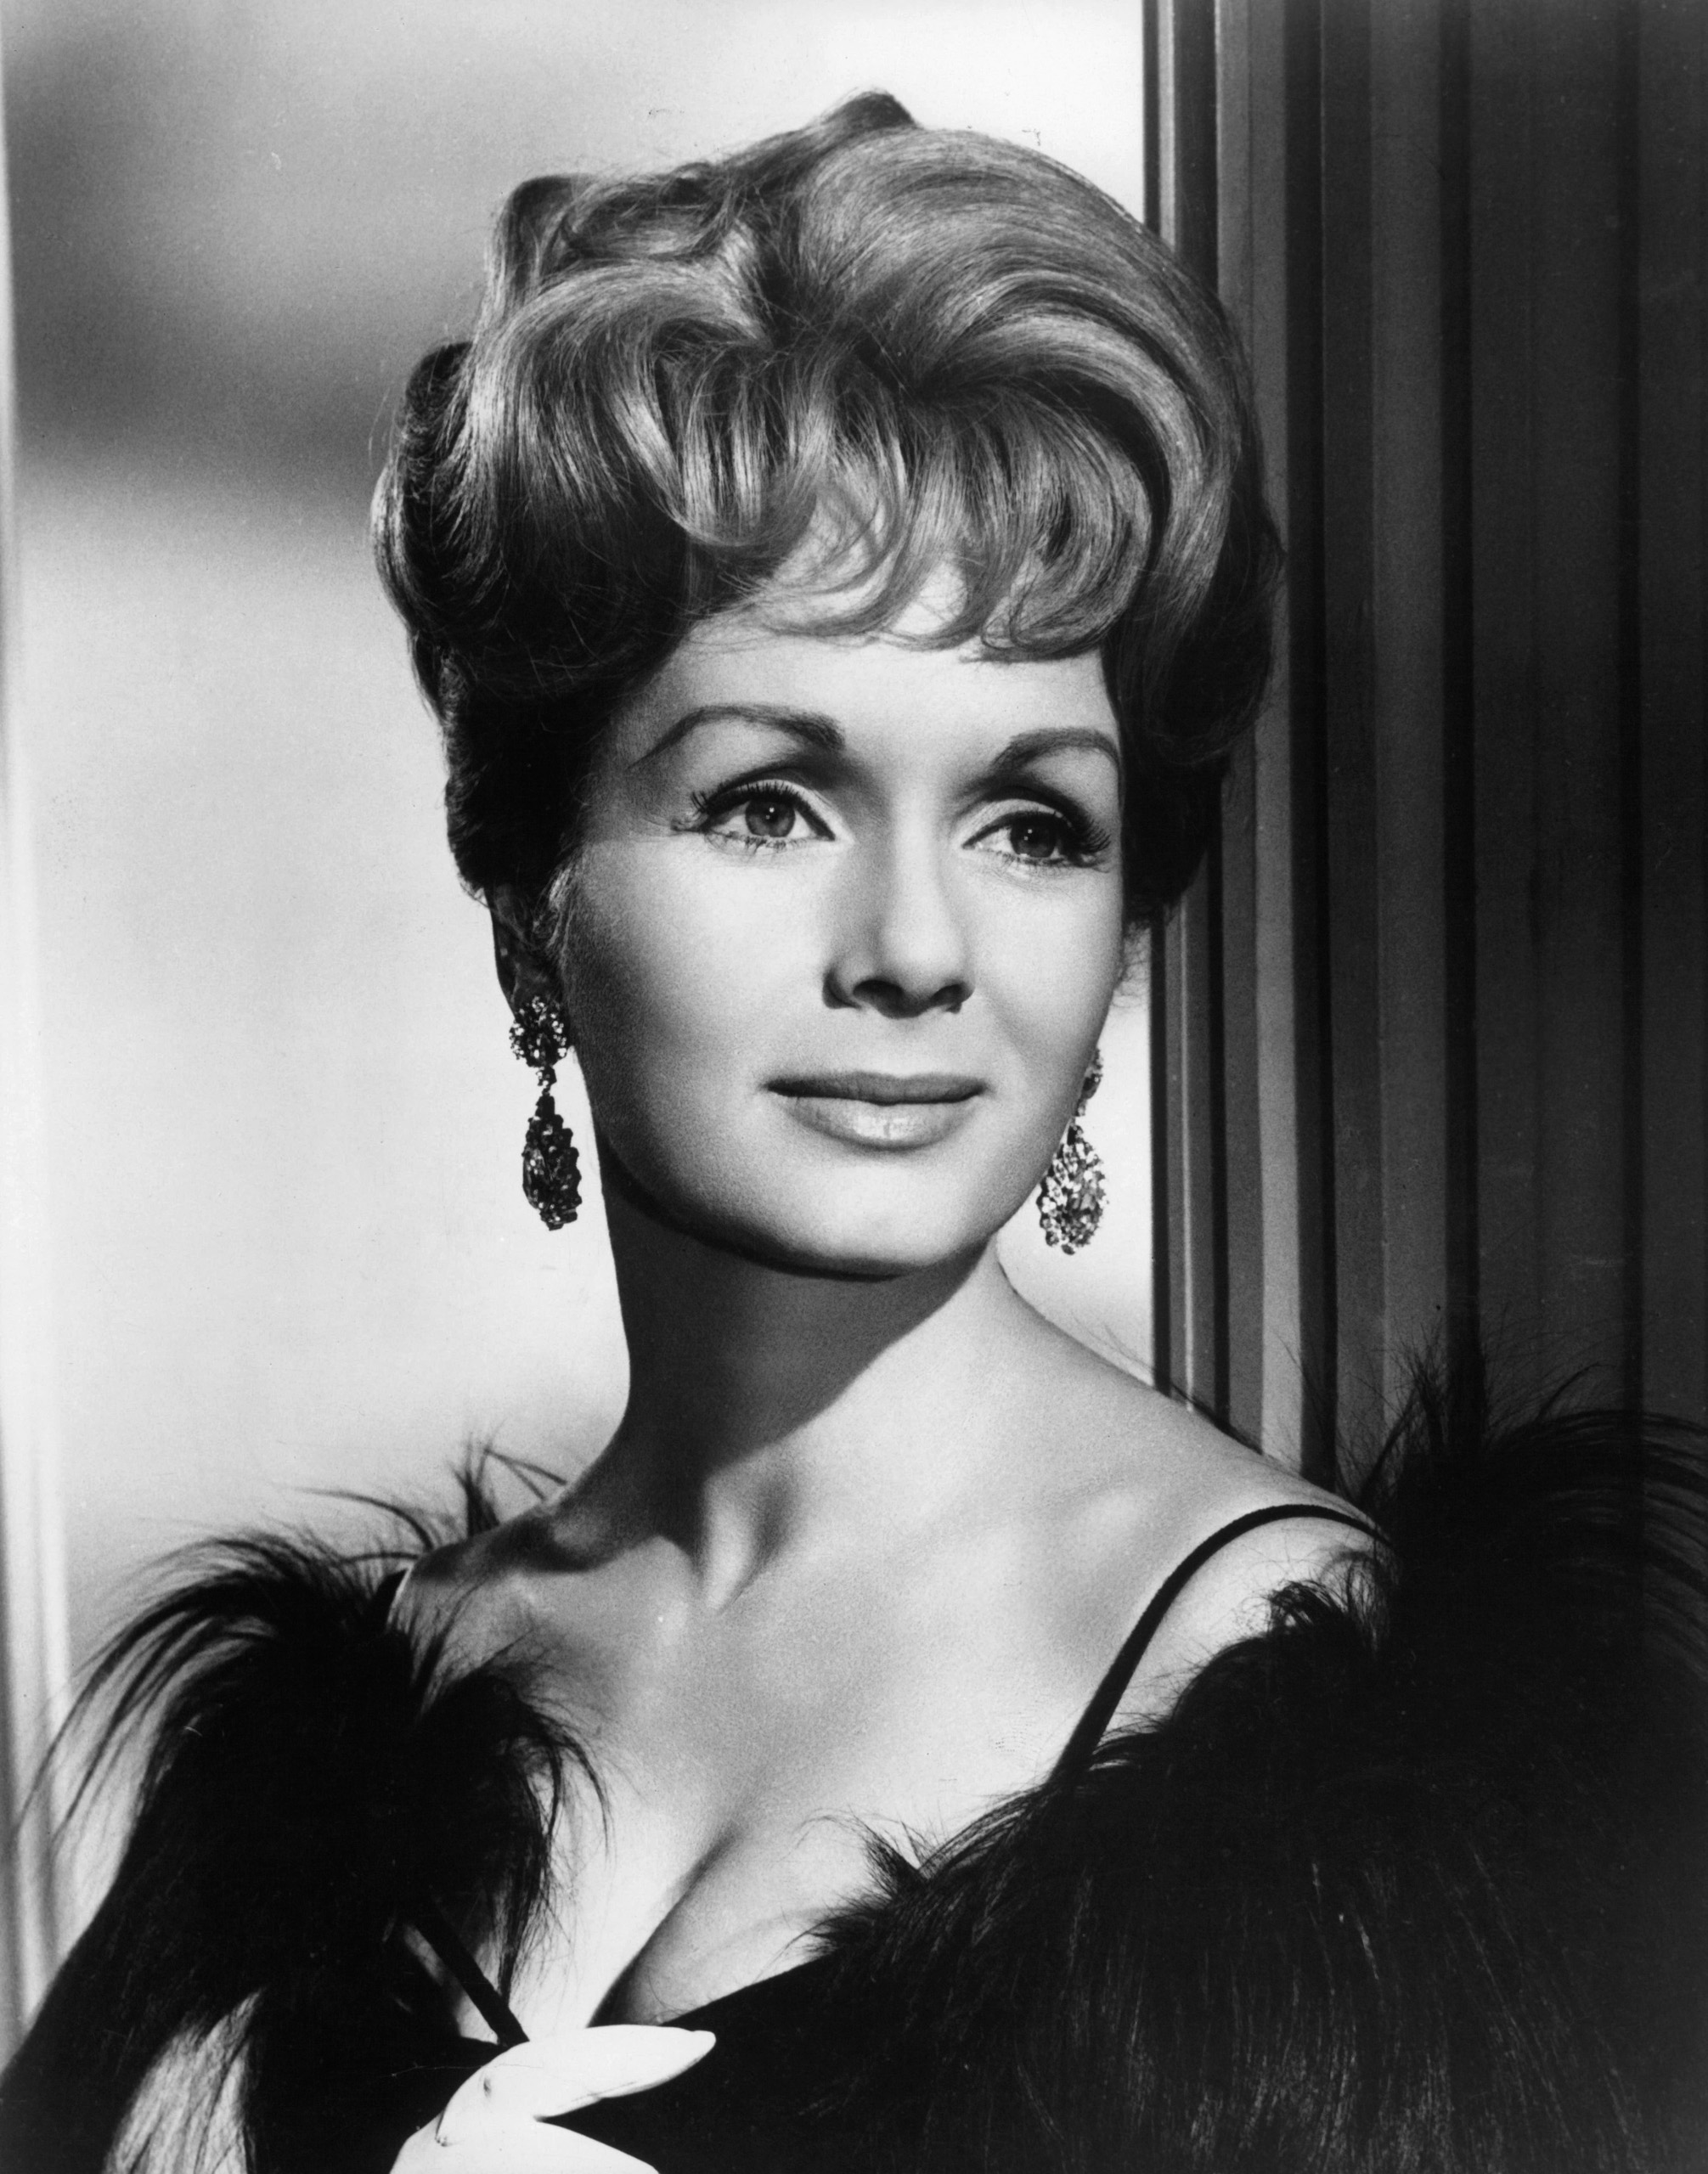 Debbie Reynolds star of the film 'The Unsinkable Molly Brown', 1964.